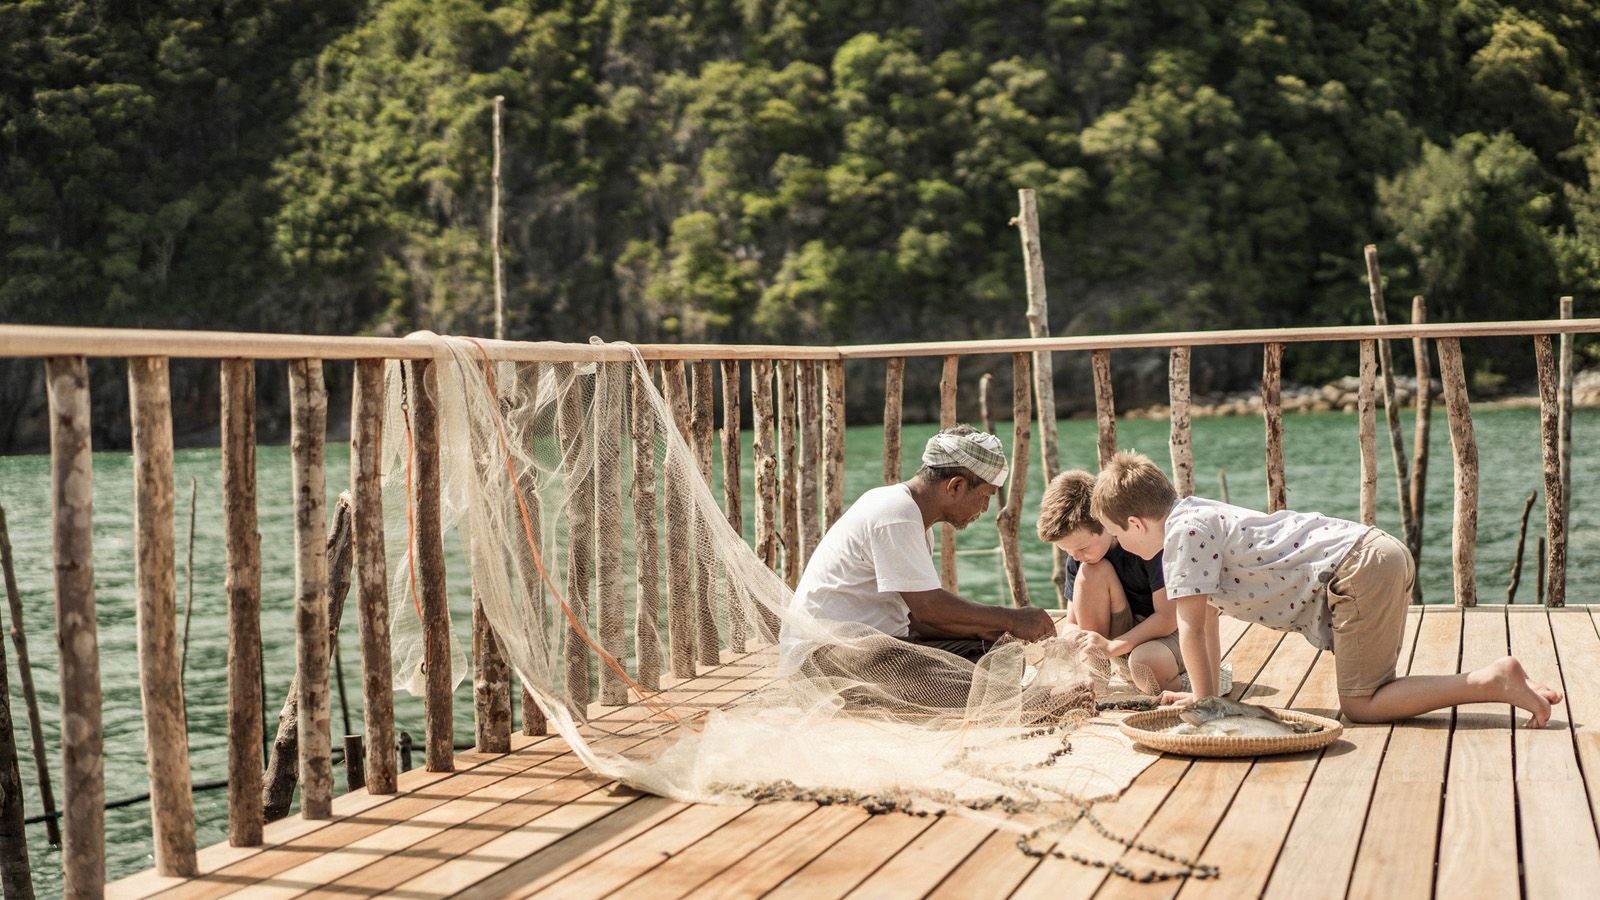 Four Seasons Resort Langkawi Is A Family-Friendly Holiday Spot That Brings Your Kids Closer To Nature